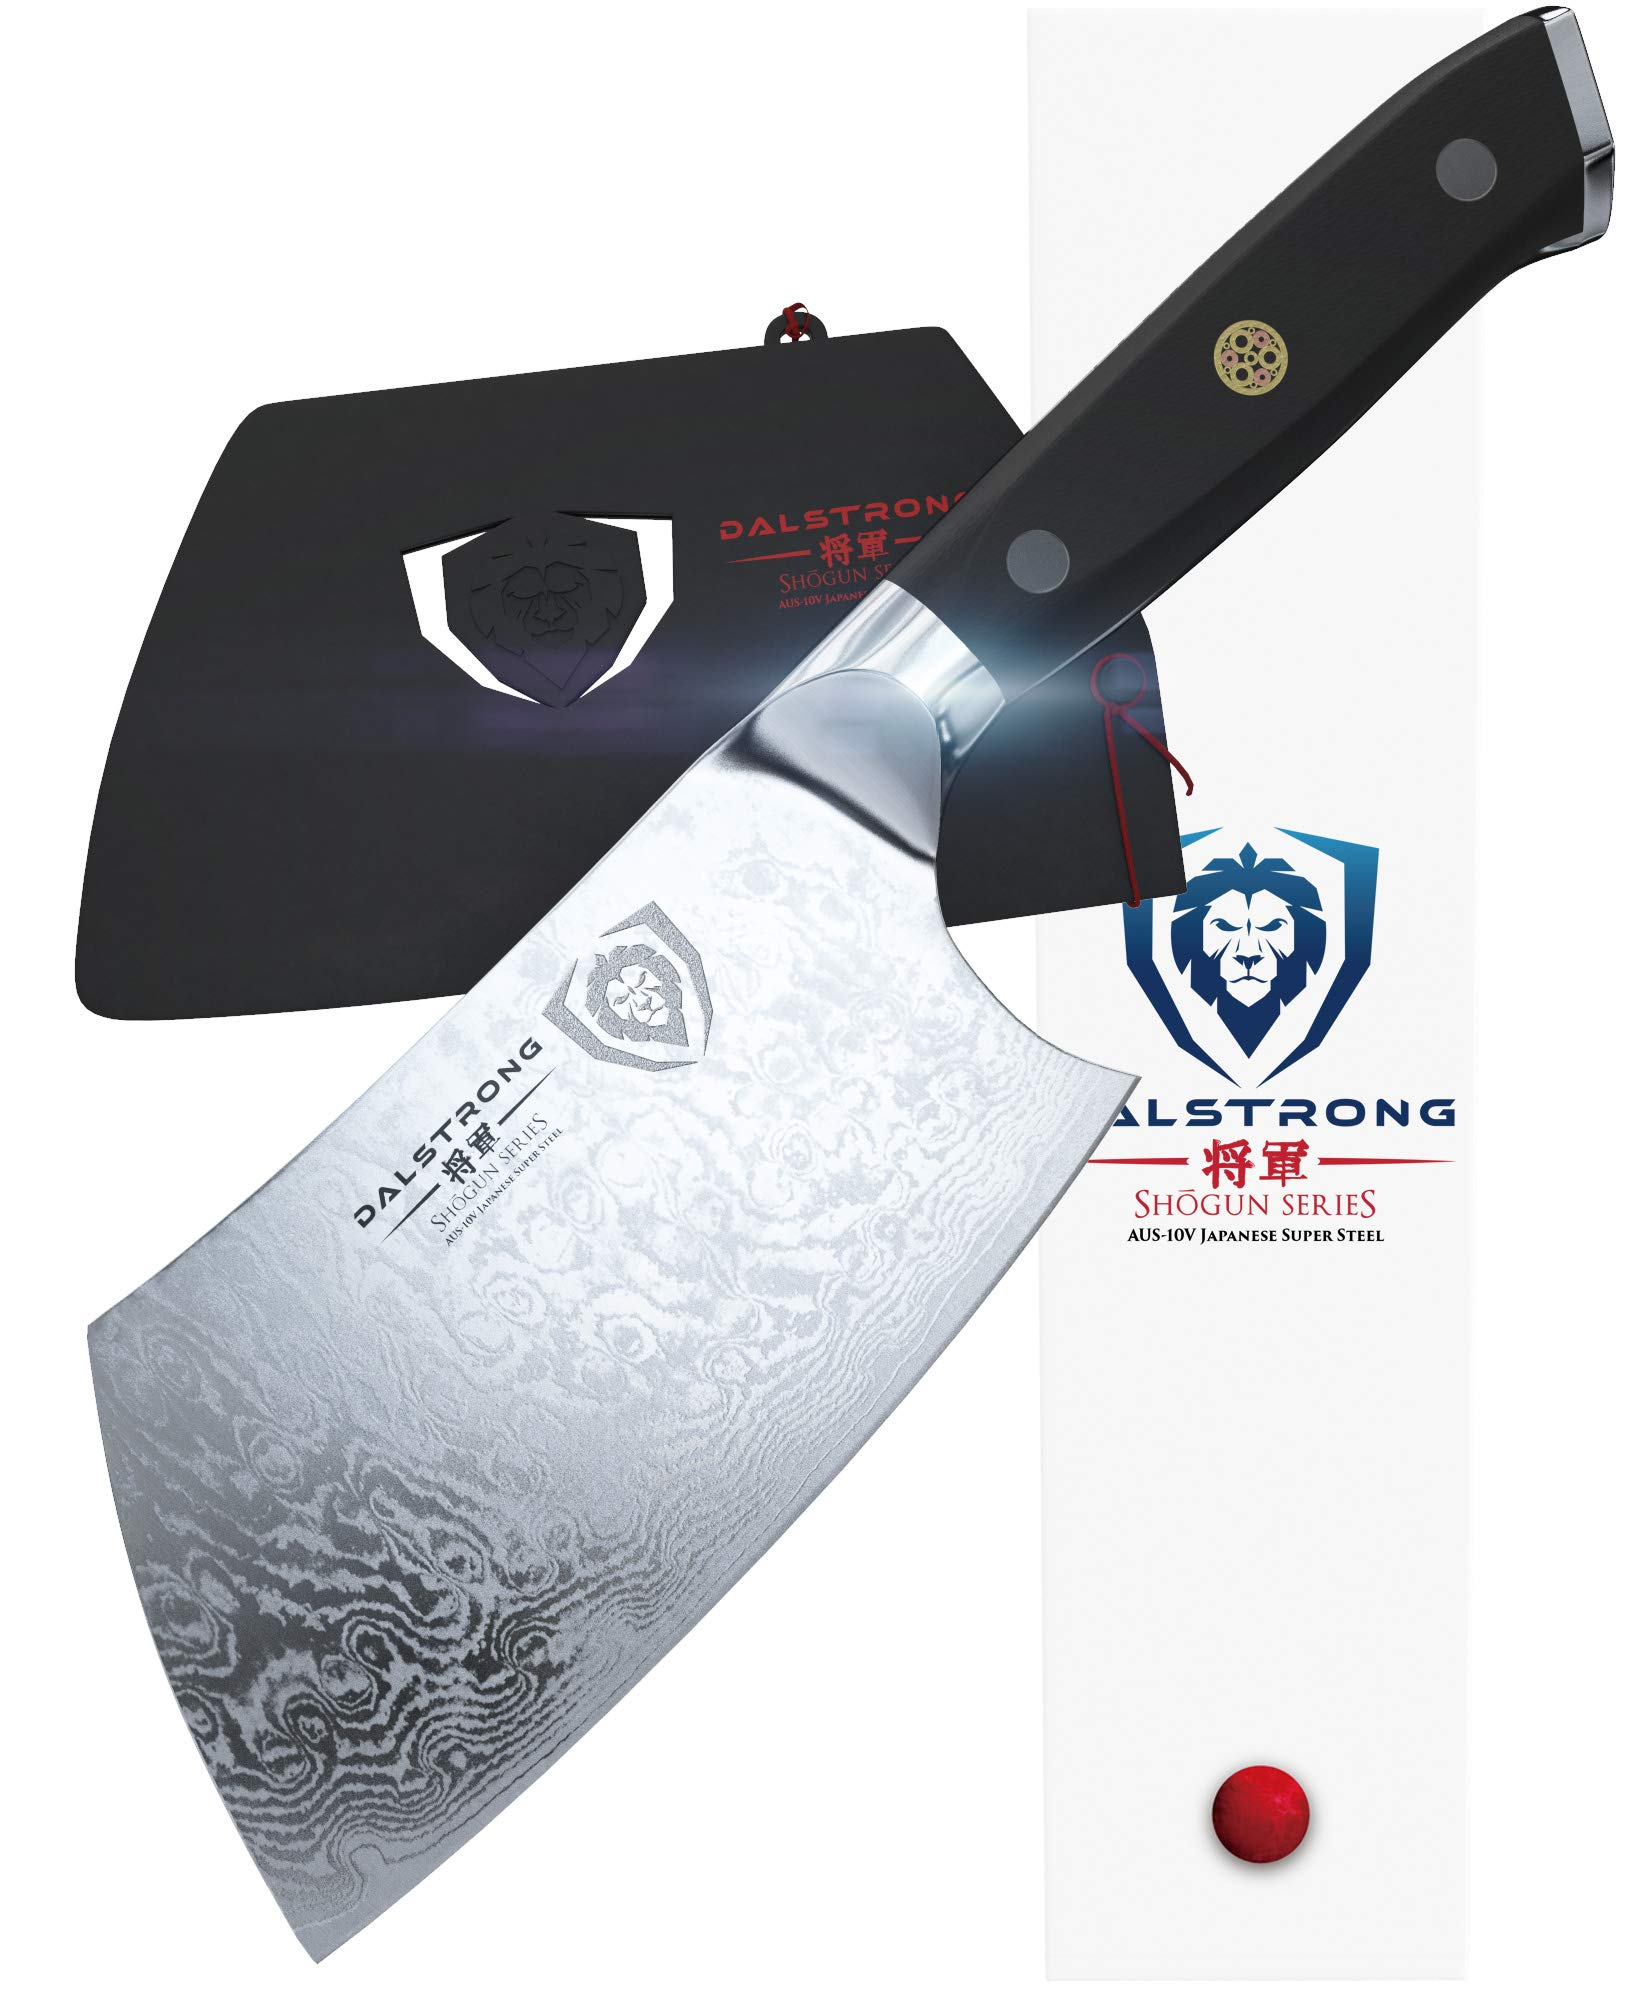 DALSTRONG - Shogun Series 4.5'' Mini Cleaver - Japanese AUS-10V Super Steel - Vacuum Heat Treated